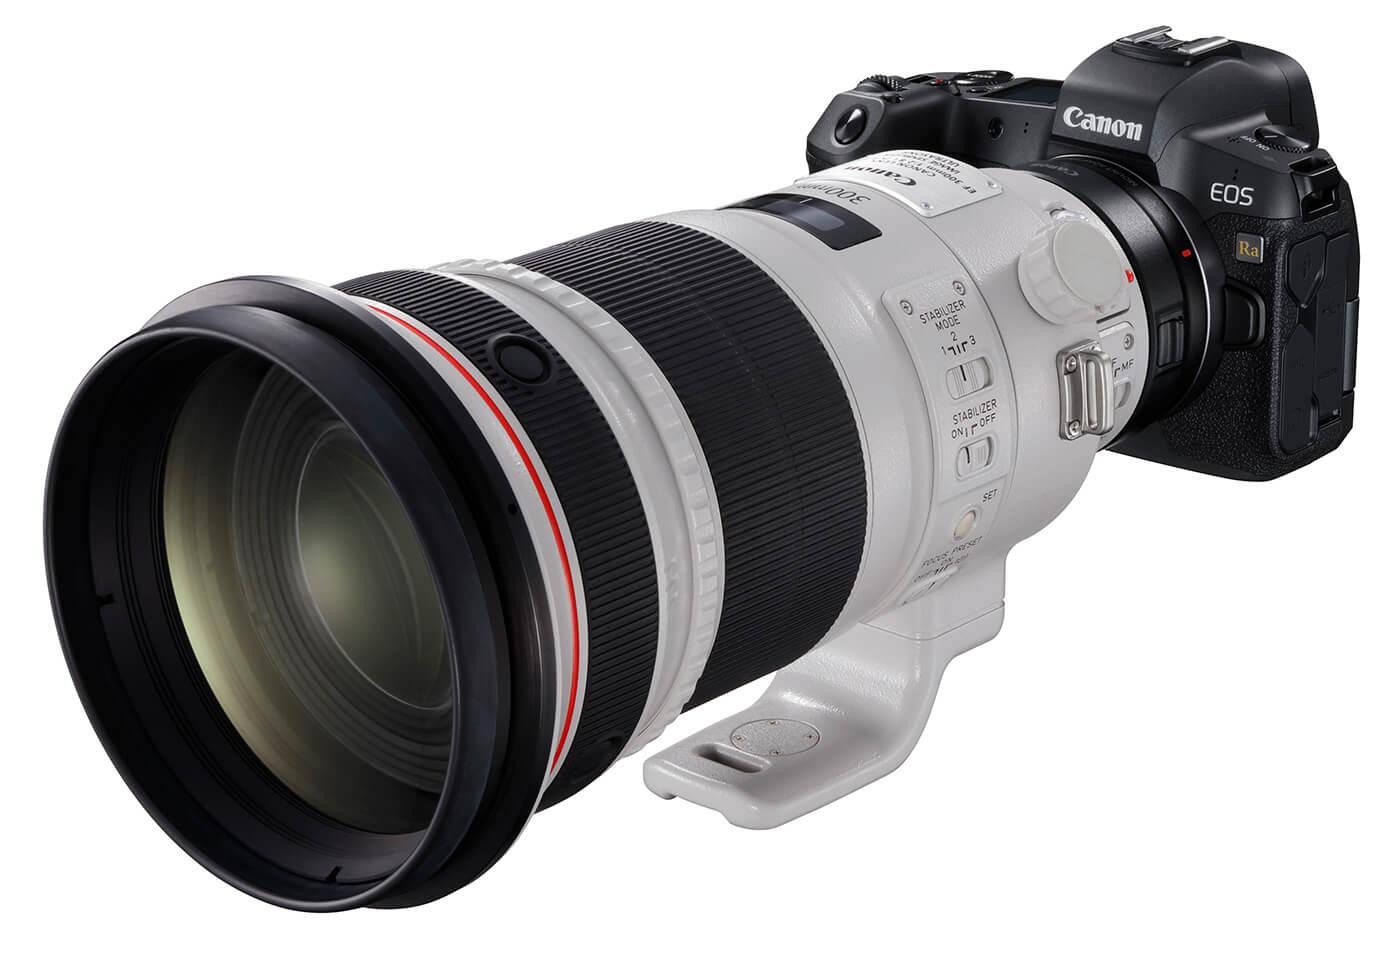 Product image of EOS Ra with telephoto lens